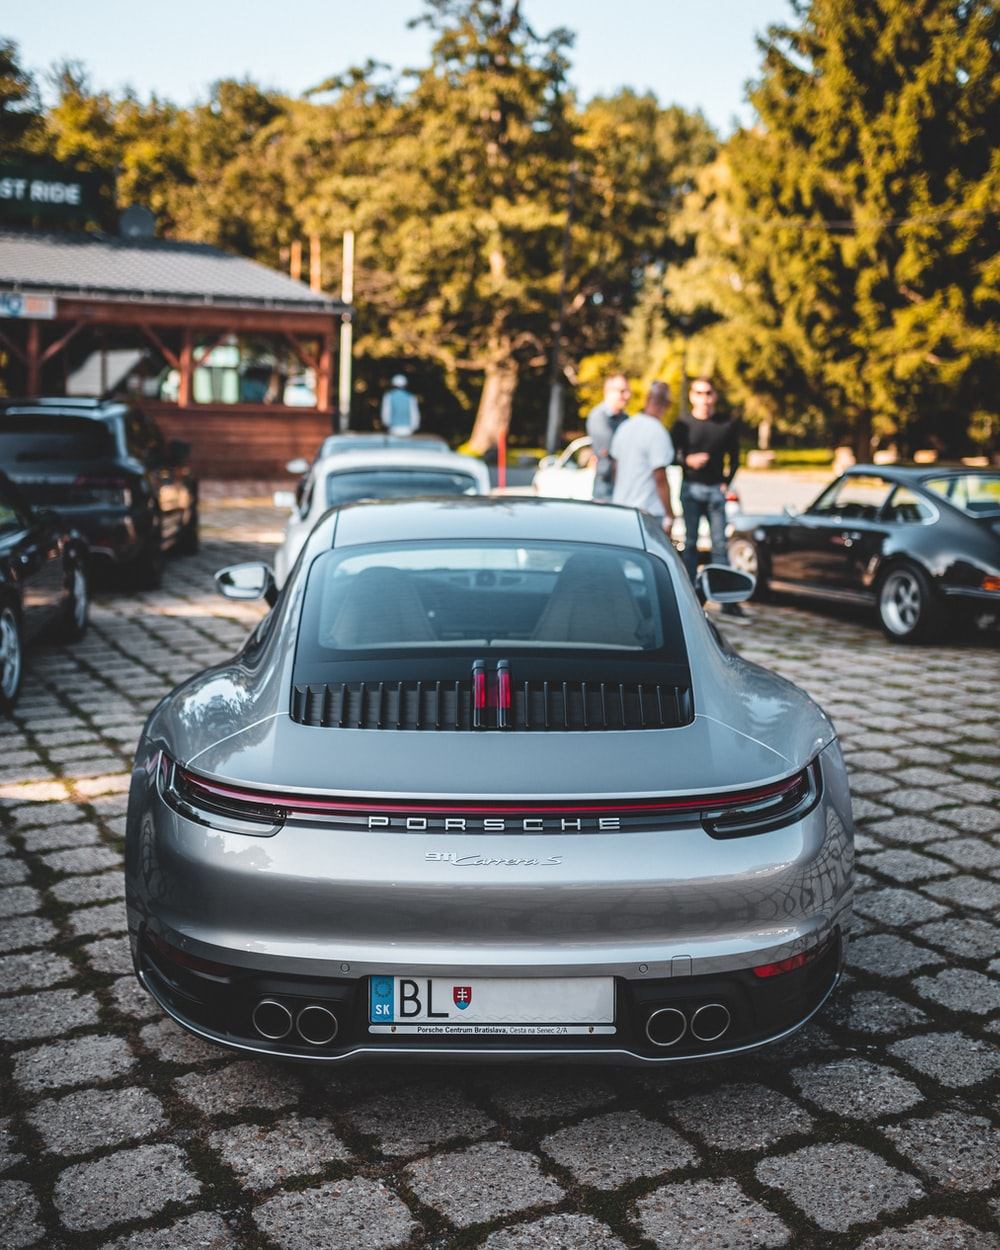 silver Porsche car parked near green trees